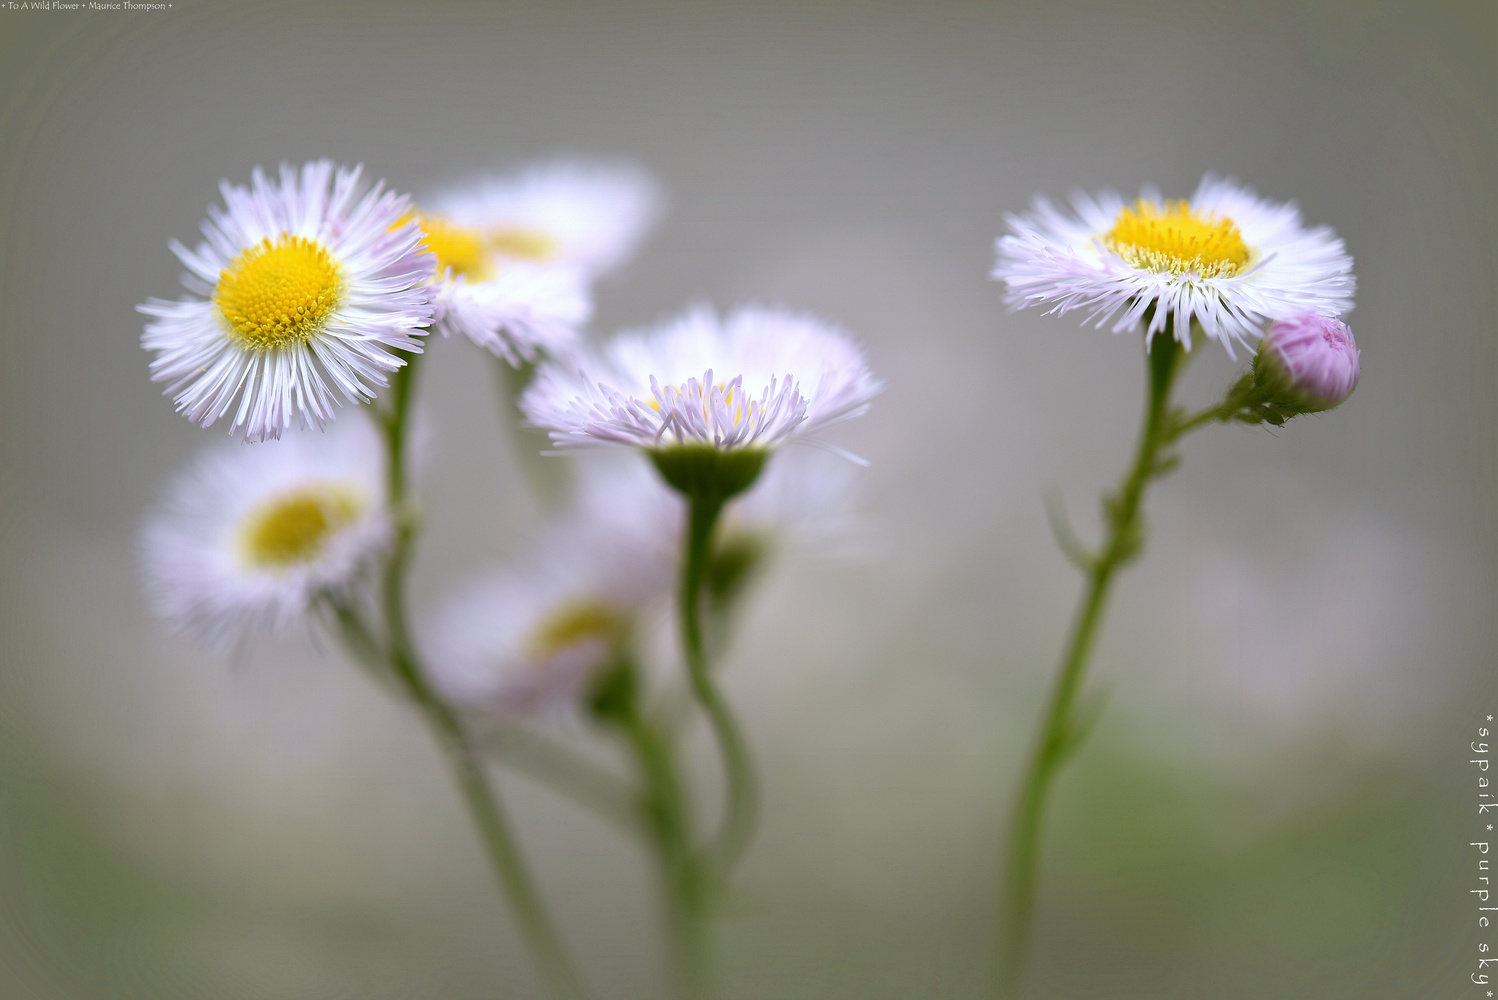 To A Wild Flower by s y paik